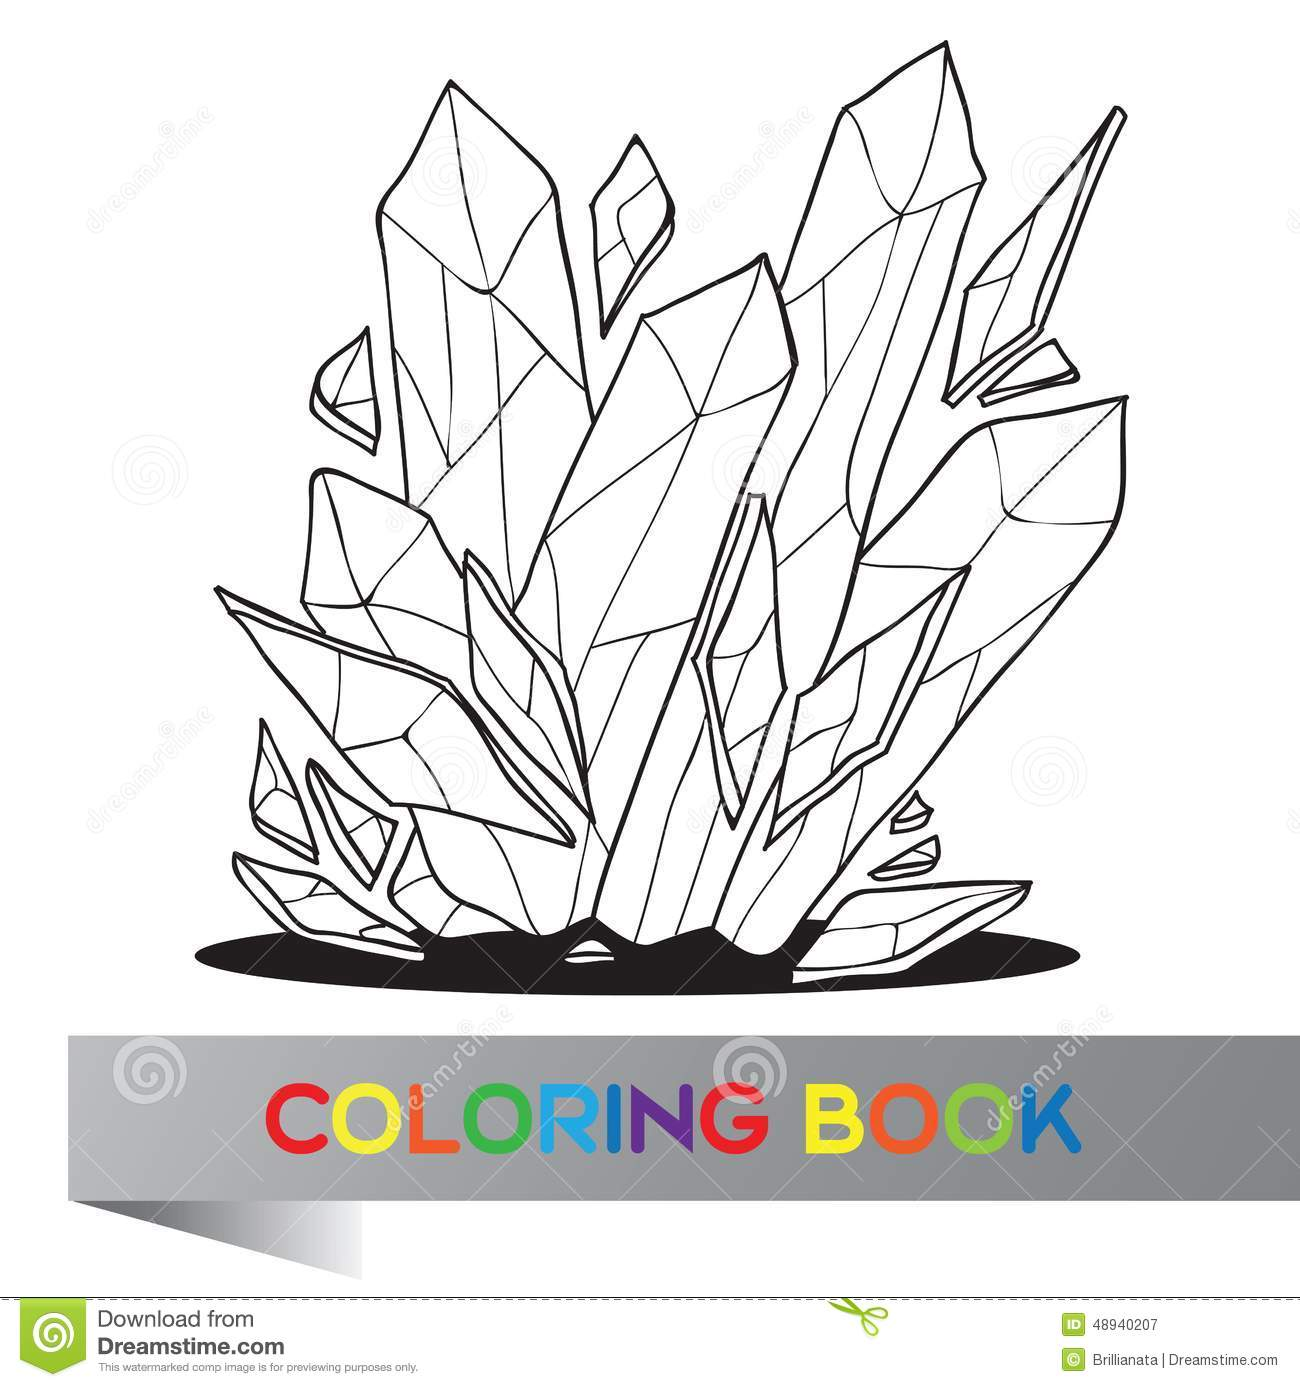 Coloring book vector illustration stock vector image Coloring book your photos